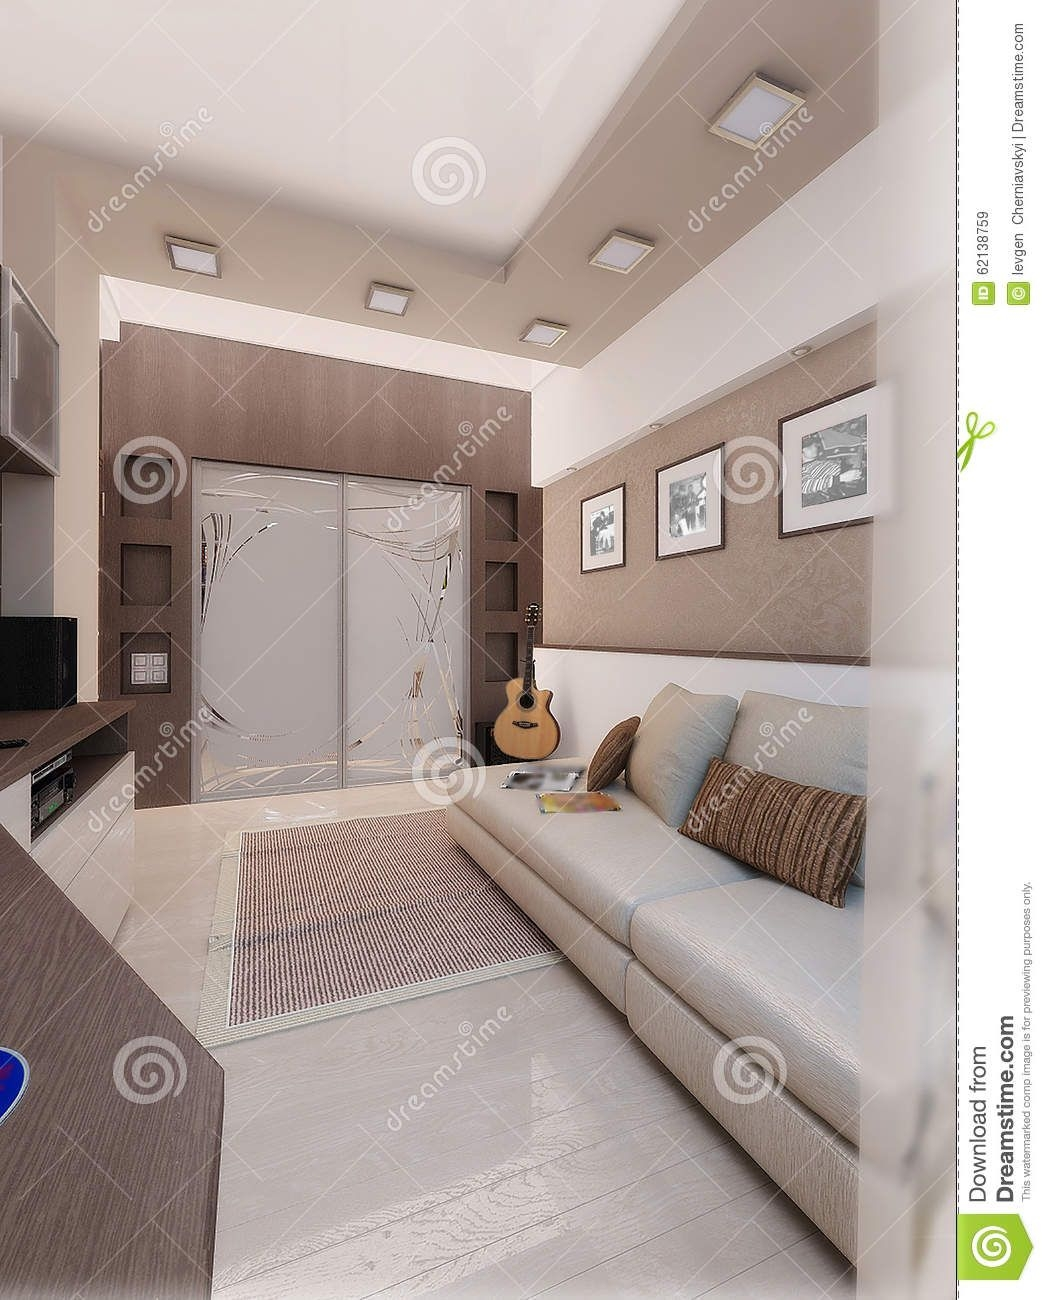 Young Man Bedroom Interior Design Render 3D Stock Image  Image Of Fixture Render 62138759